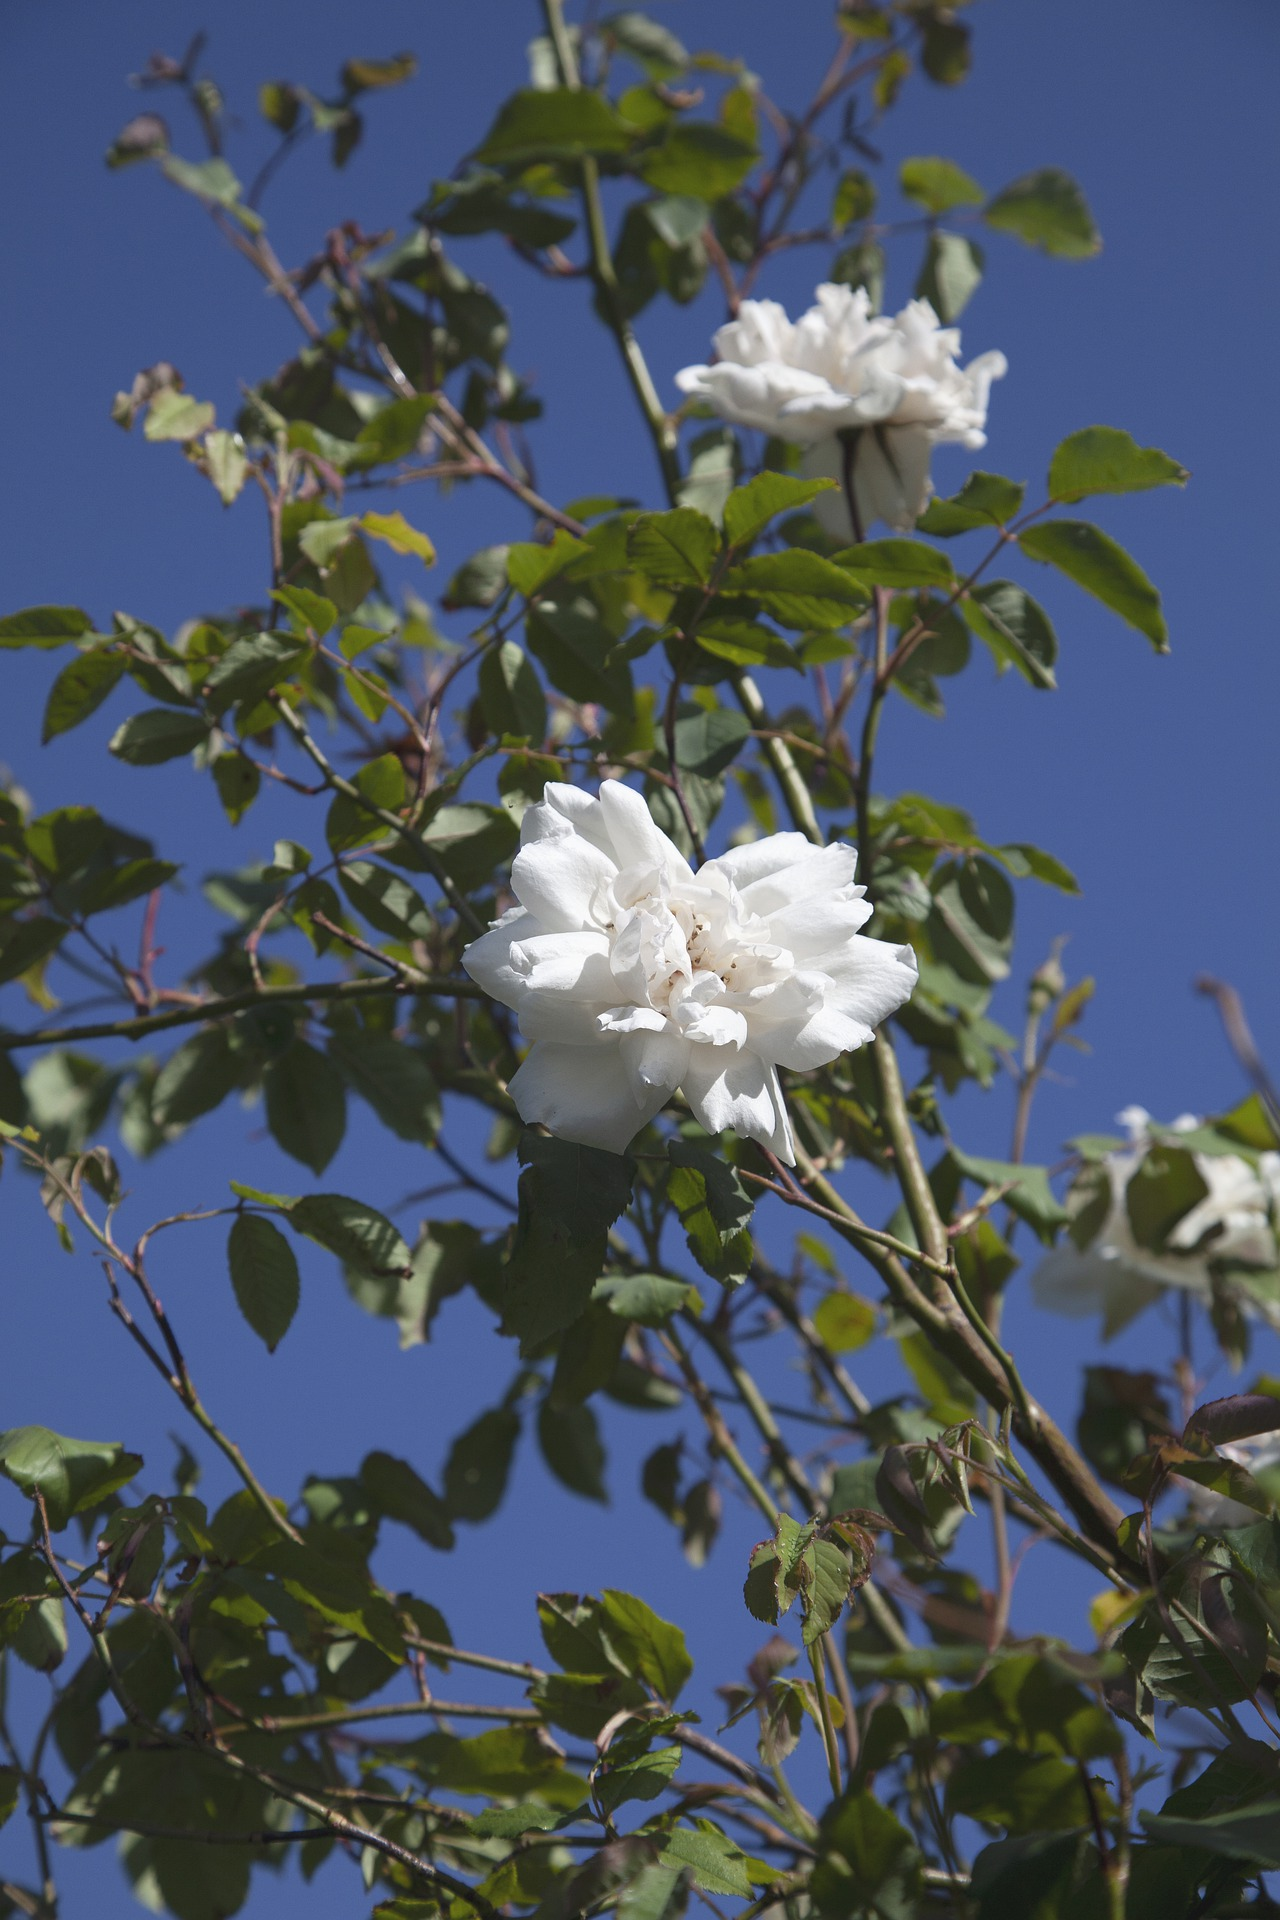 Above: Rosie Trow is a bloomin' great rambling rose.